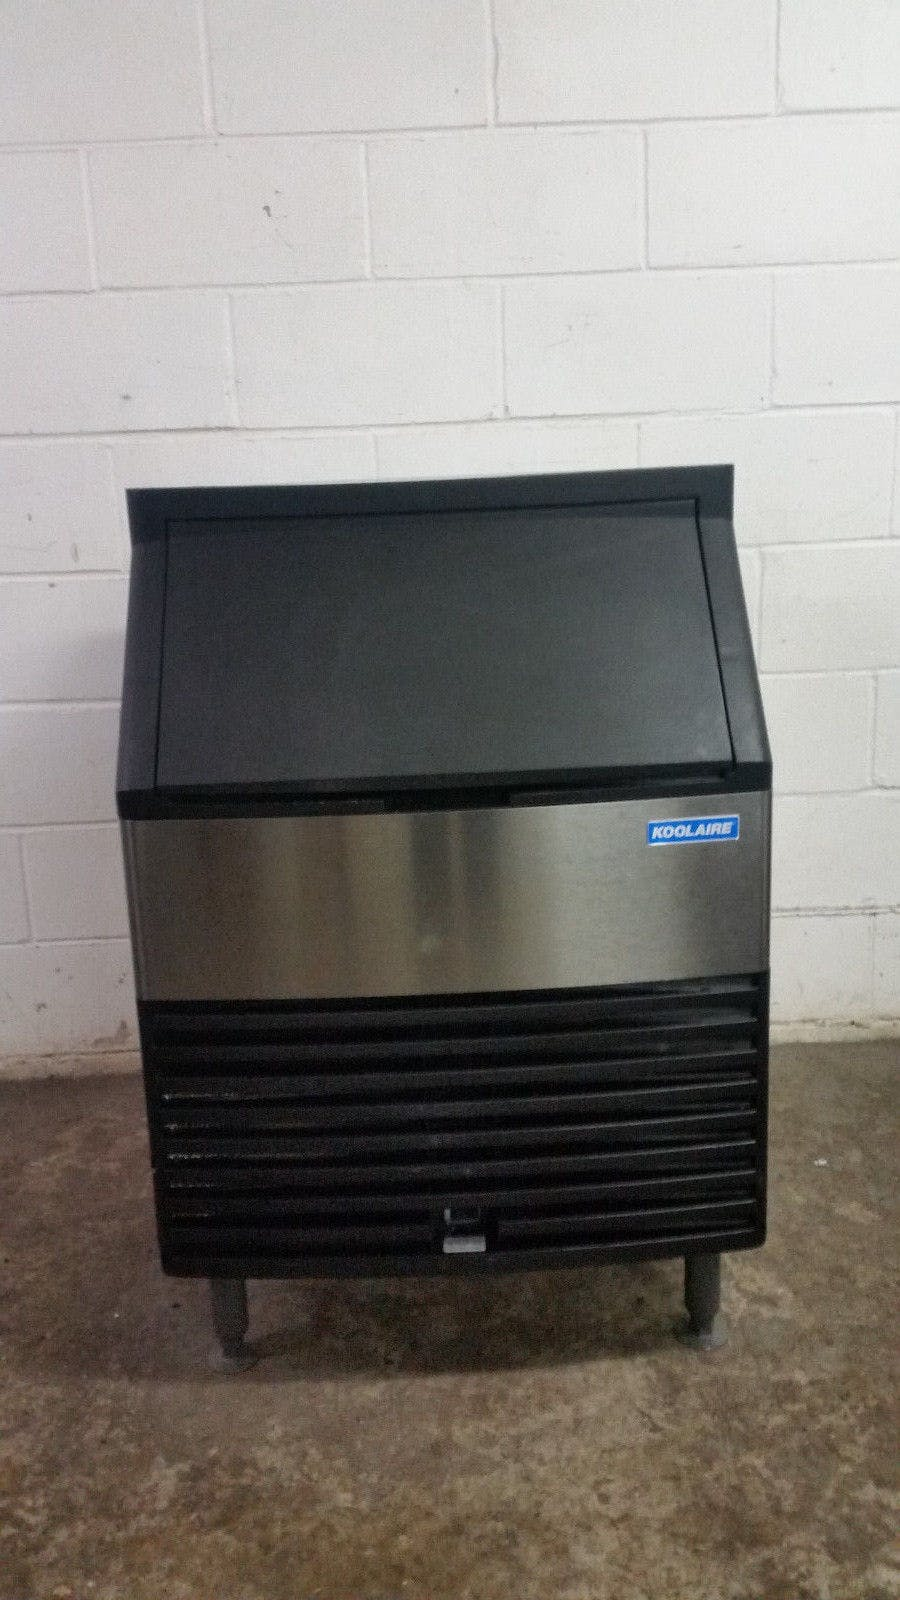 Manitowoc Koolaire 148 LB Undercounter Ice Machine Half Dice Cube KY0170A Tested